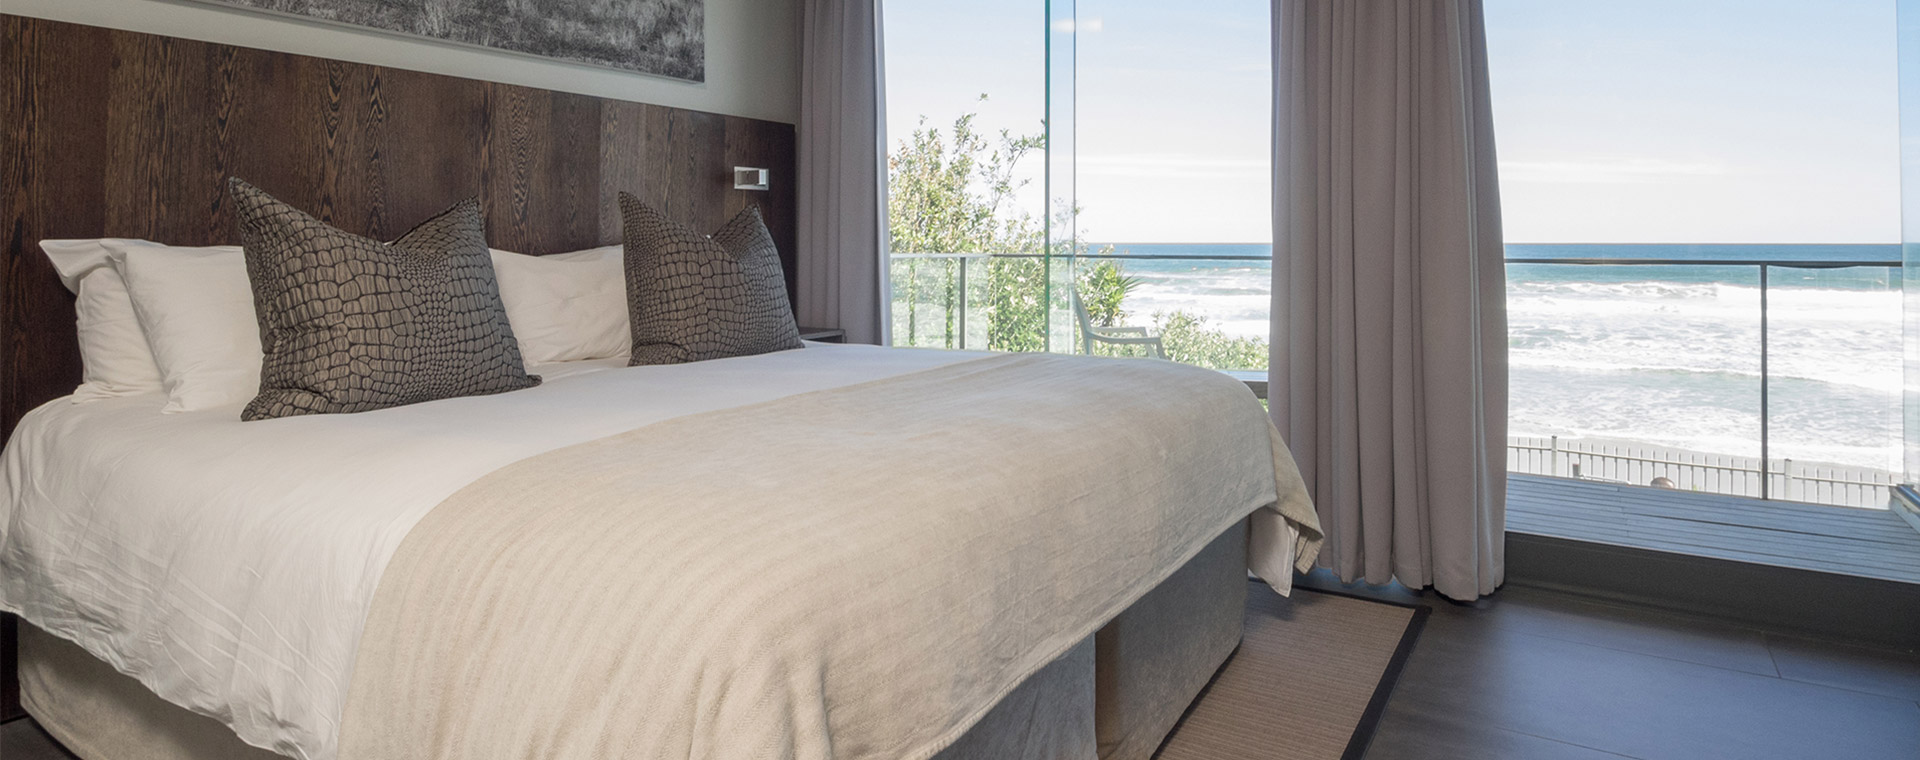 The Ocean View Guest House | Room 1 - Bed